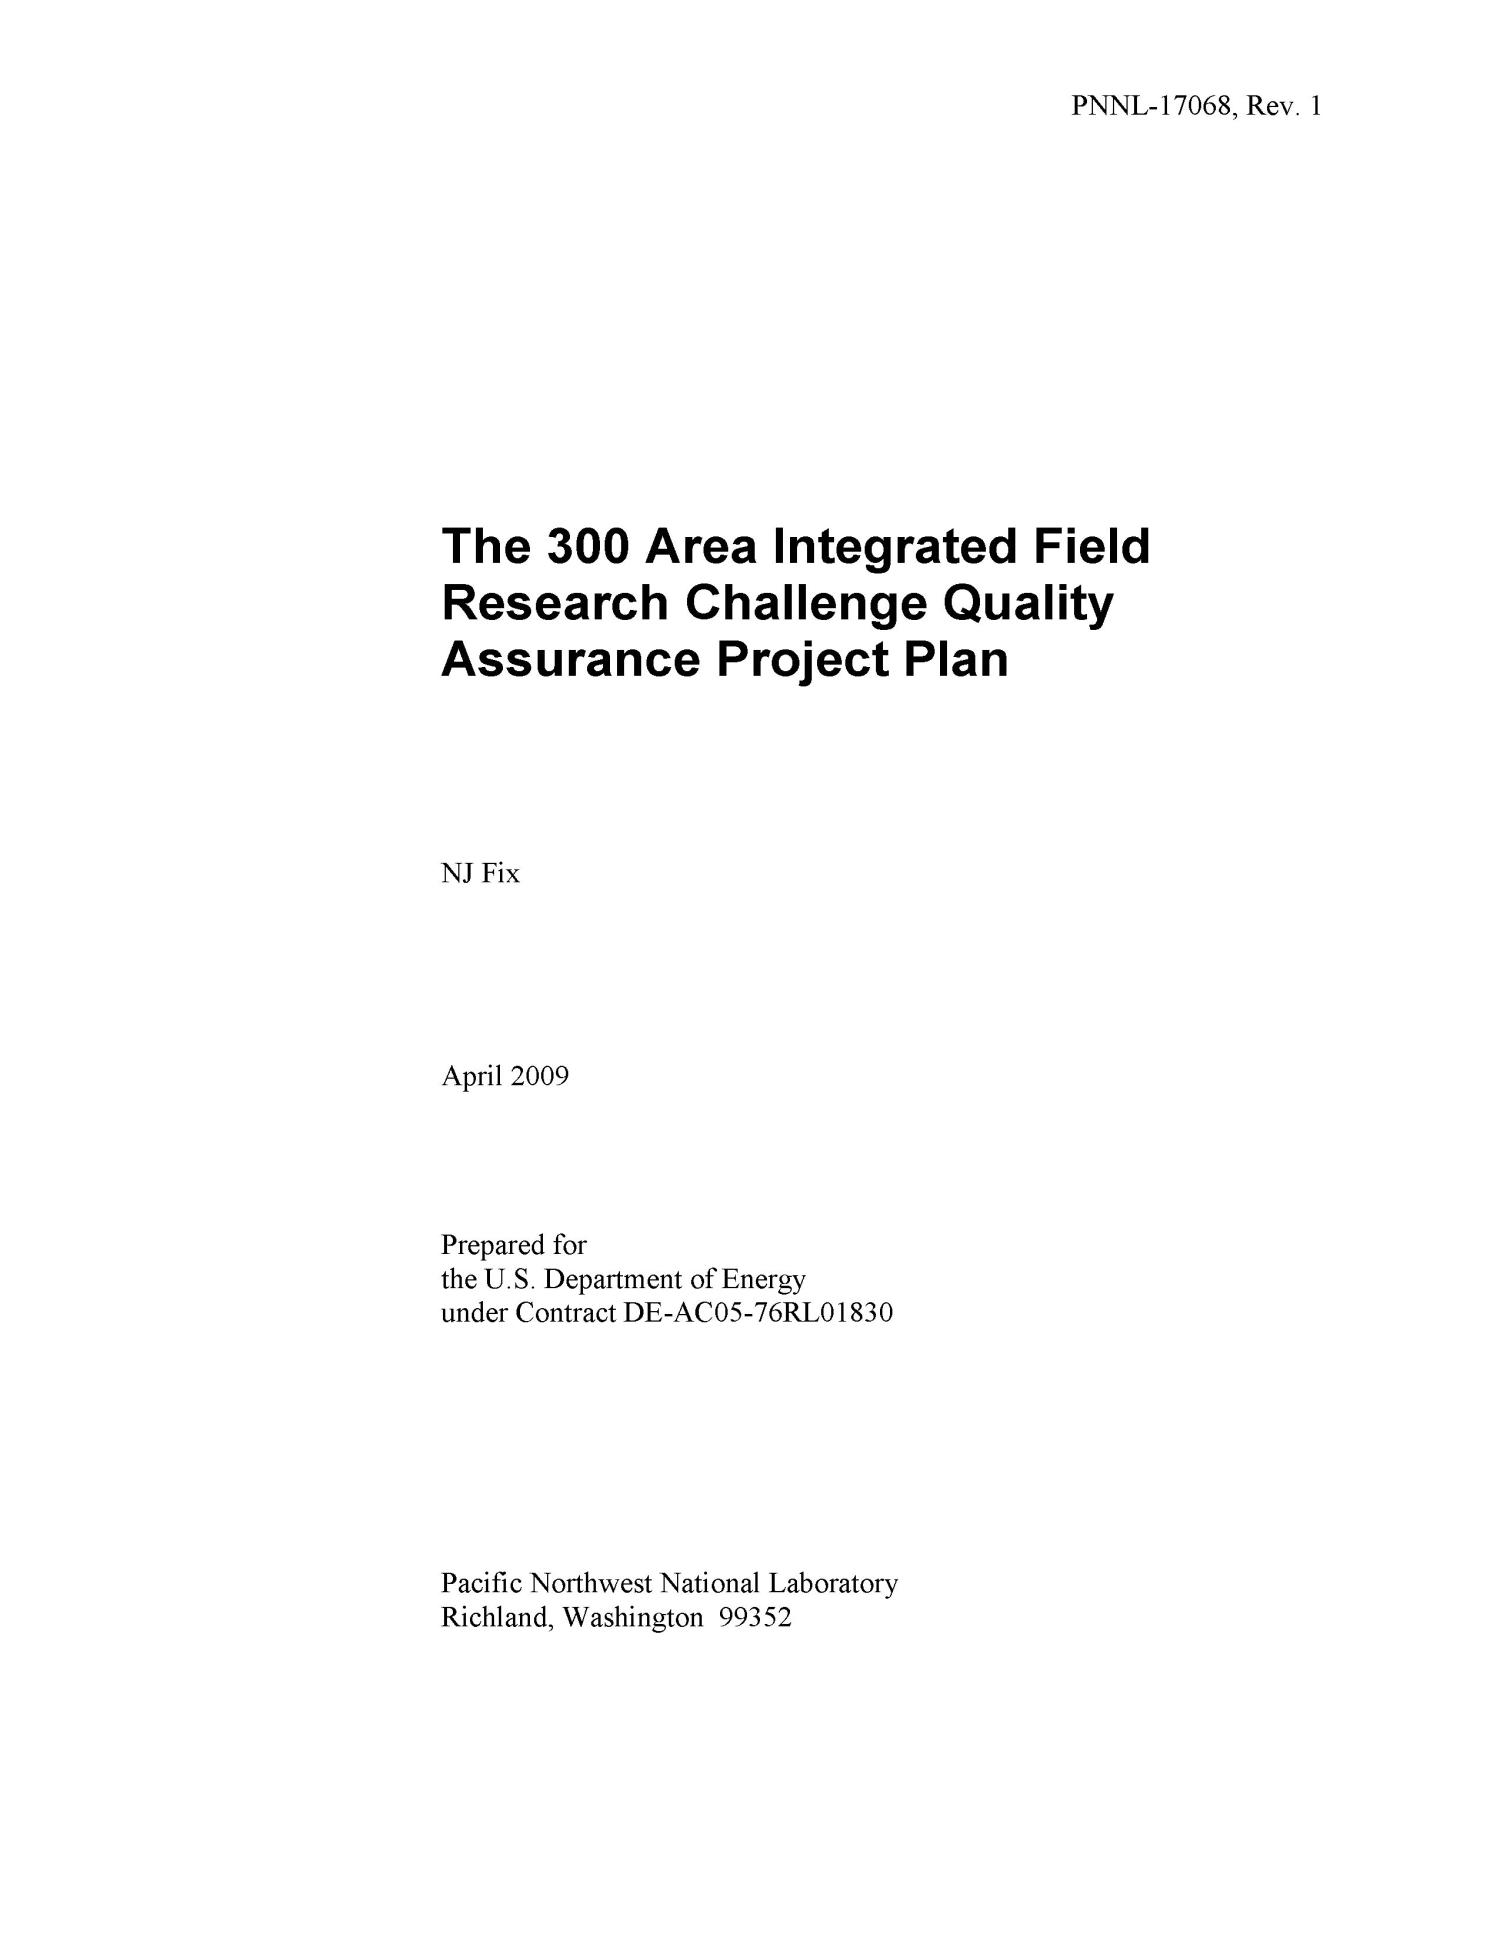 The 300 Area Integrated Field Research Challenge Quality Assurance Project Plan                                                                                                      [Sequence #]: 3 of 92